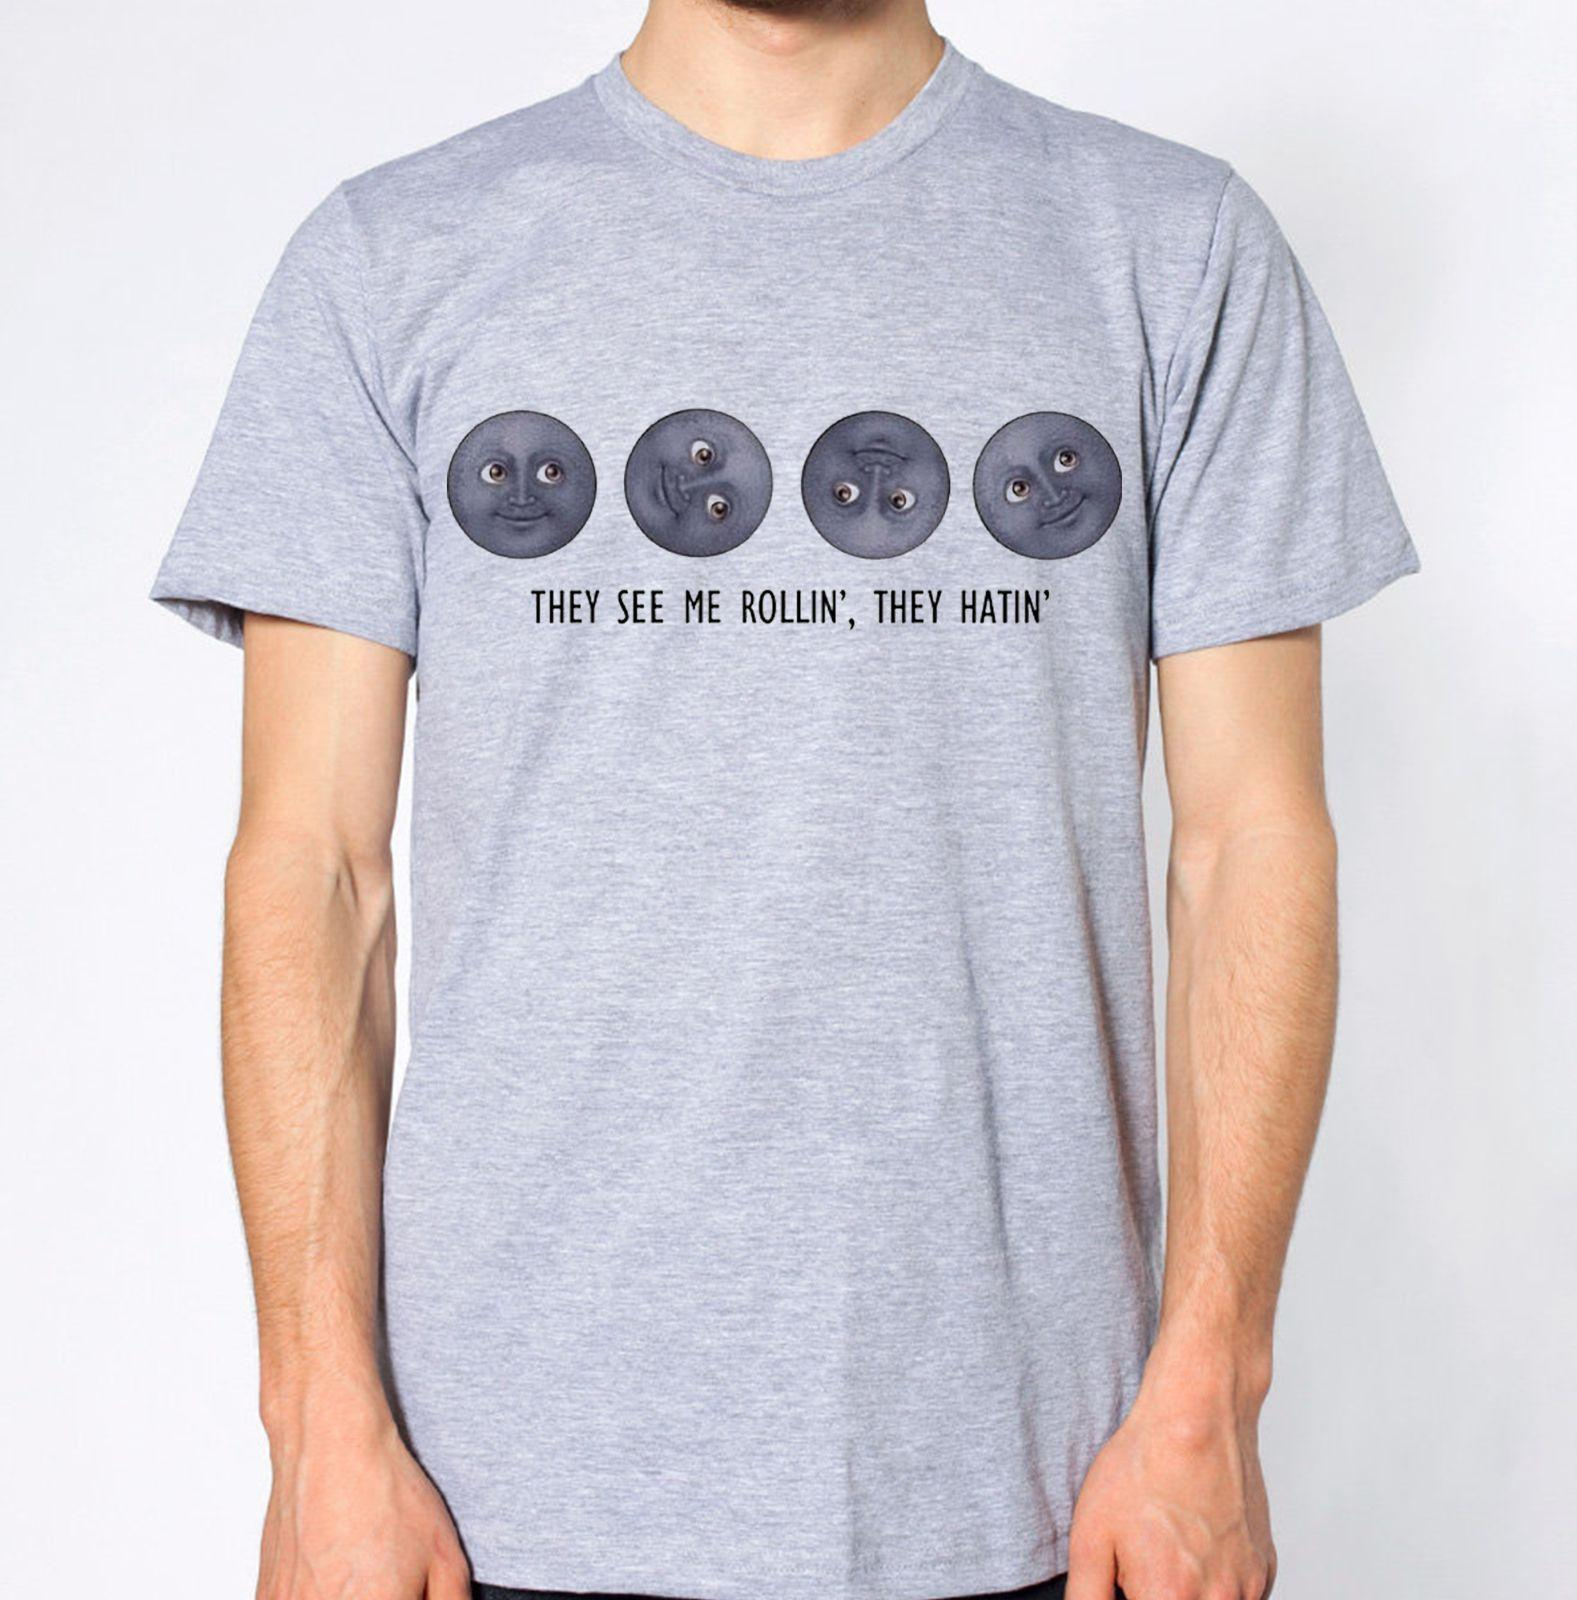 24fdcaeb1 They See Me Rollin They Hating T Shirt Moon Funny Humour Joke Lol Lmao Top T  Shirt Shop Design Crazy T Shirts Online From Directwallartuk, $11.68|  DHgate.